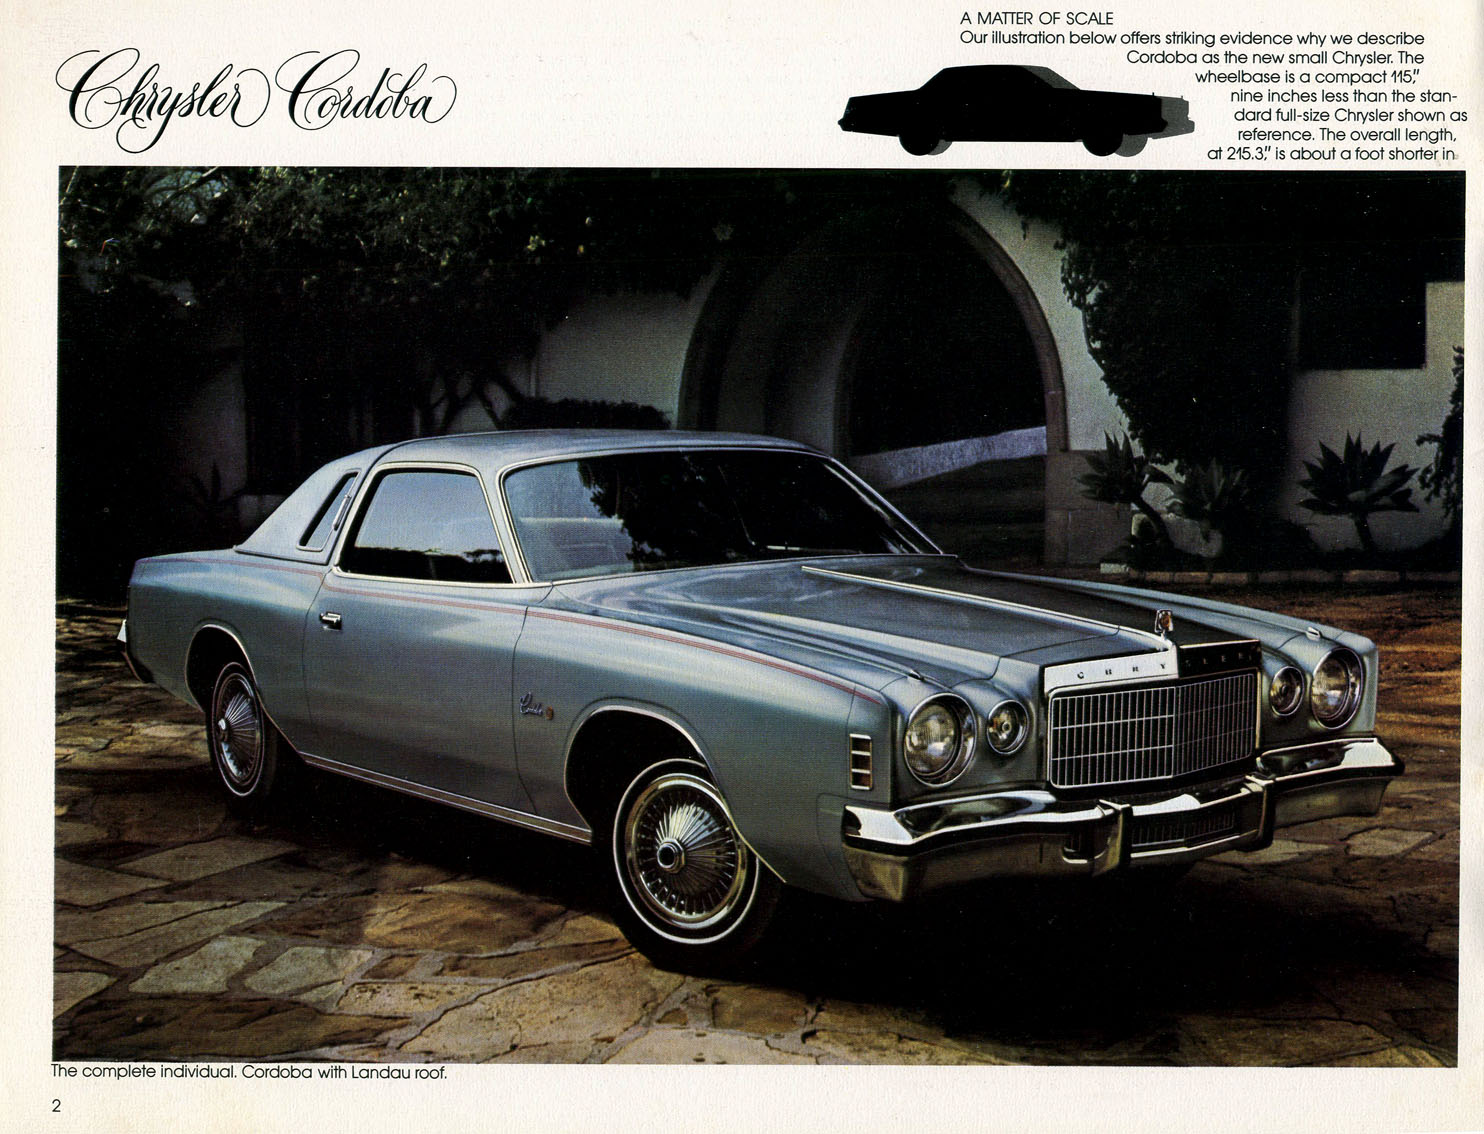 Chrysler Cordoba #11